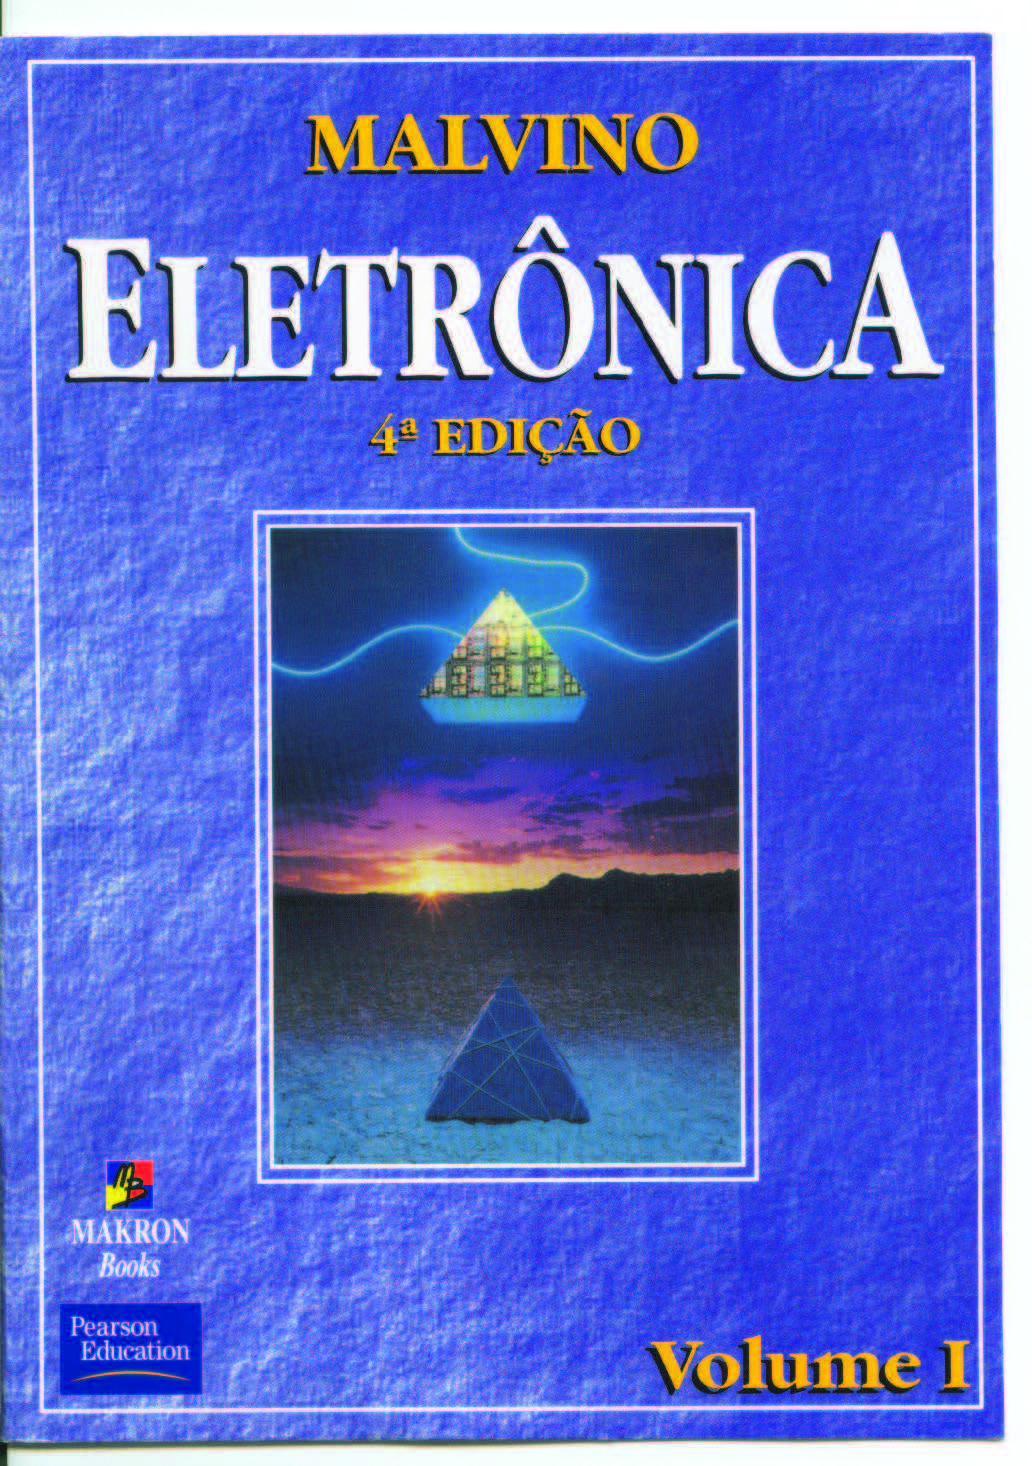 Download malvino livro eletronica, v. 1 ~ eletrodroid.